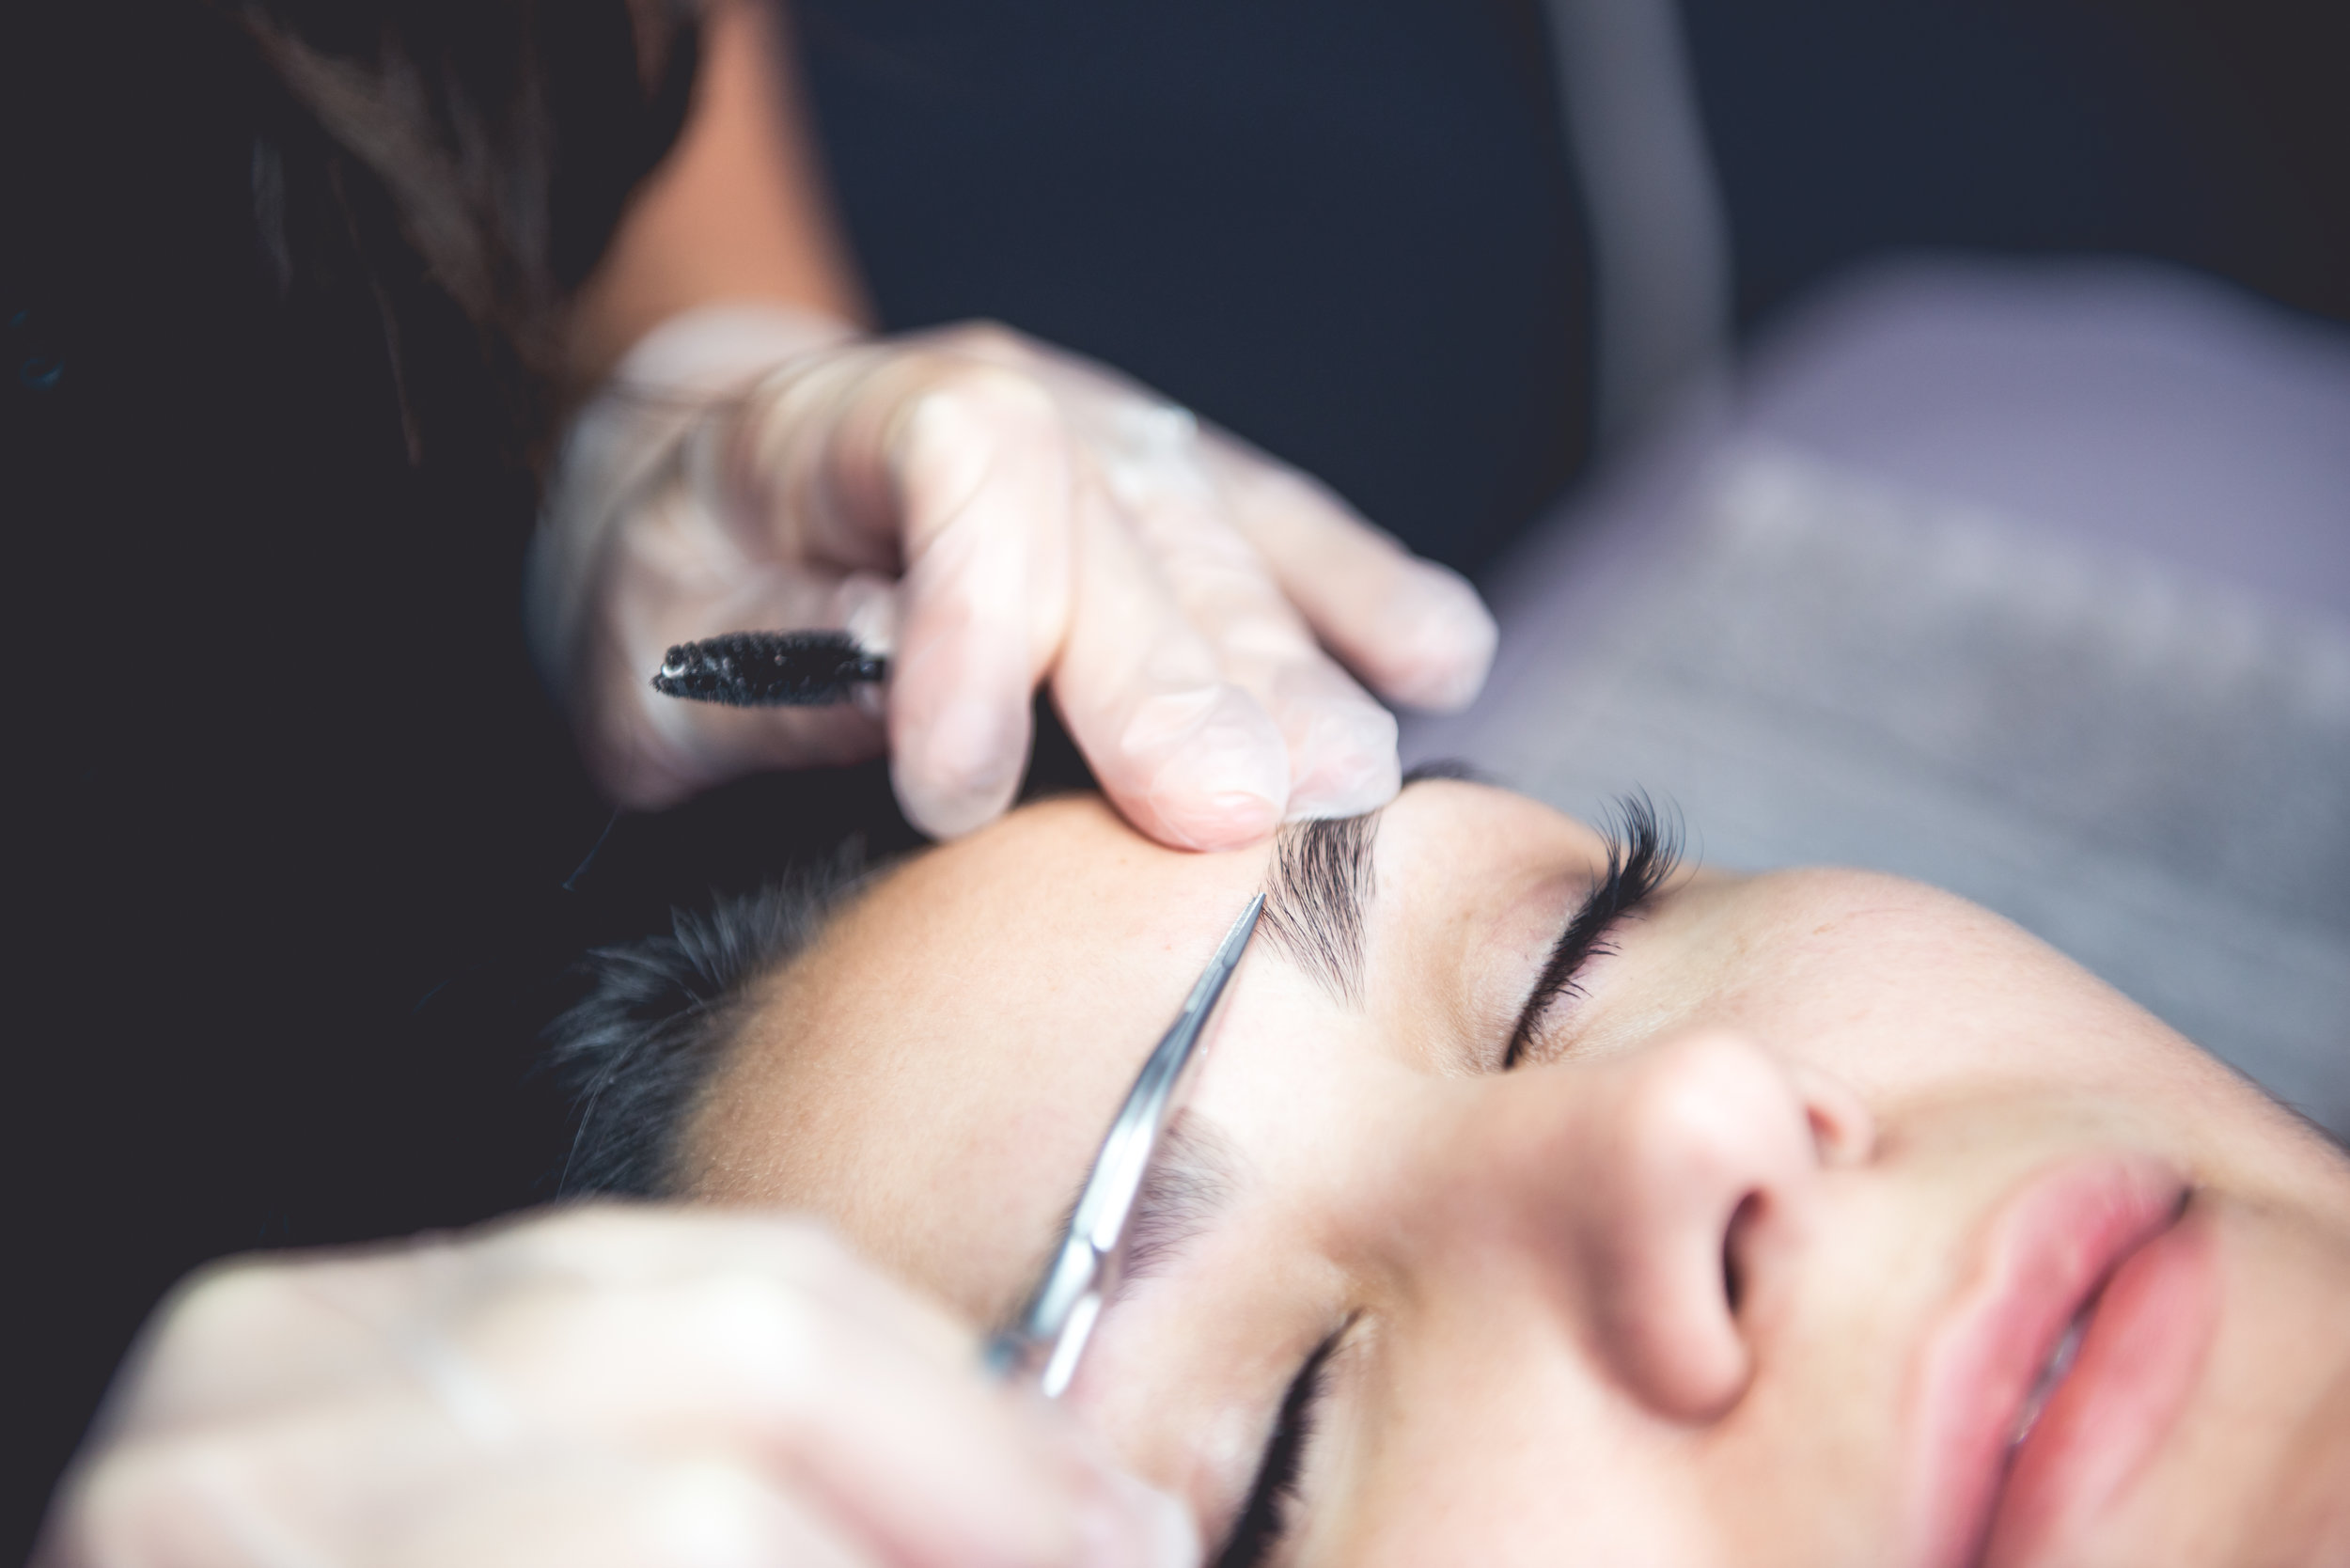 Eyebrow waxing services at Wax That, waxing in Austin Texas